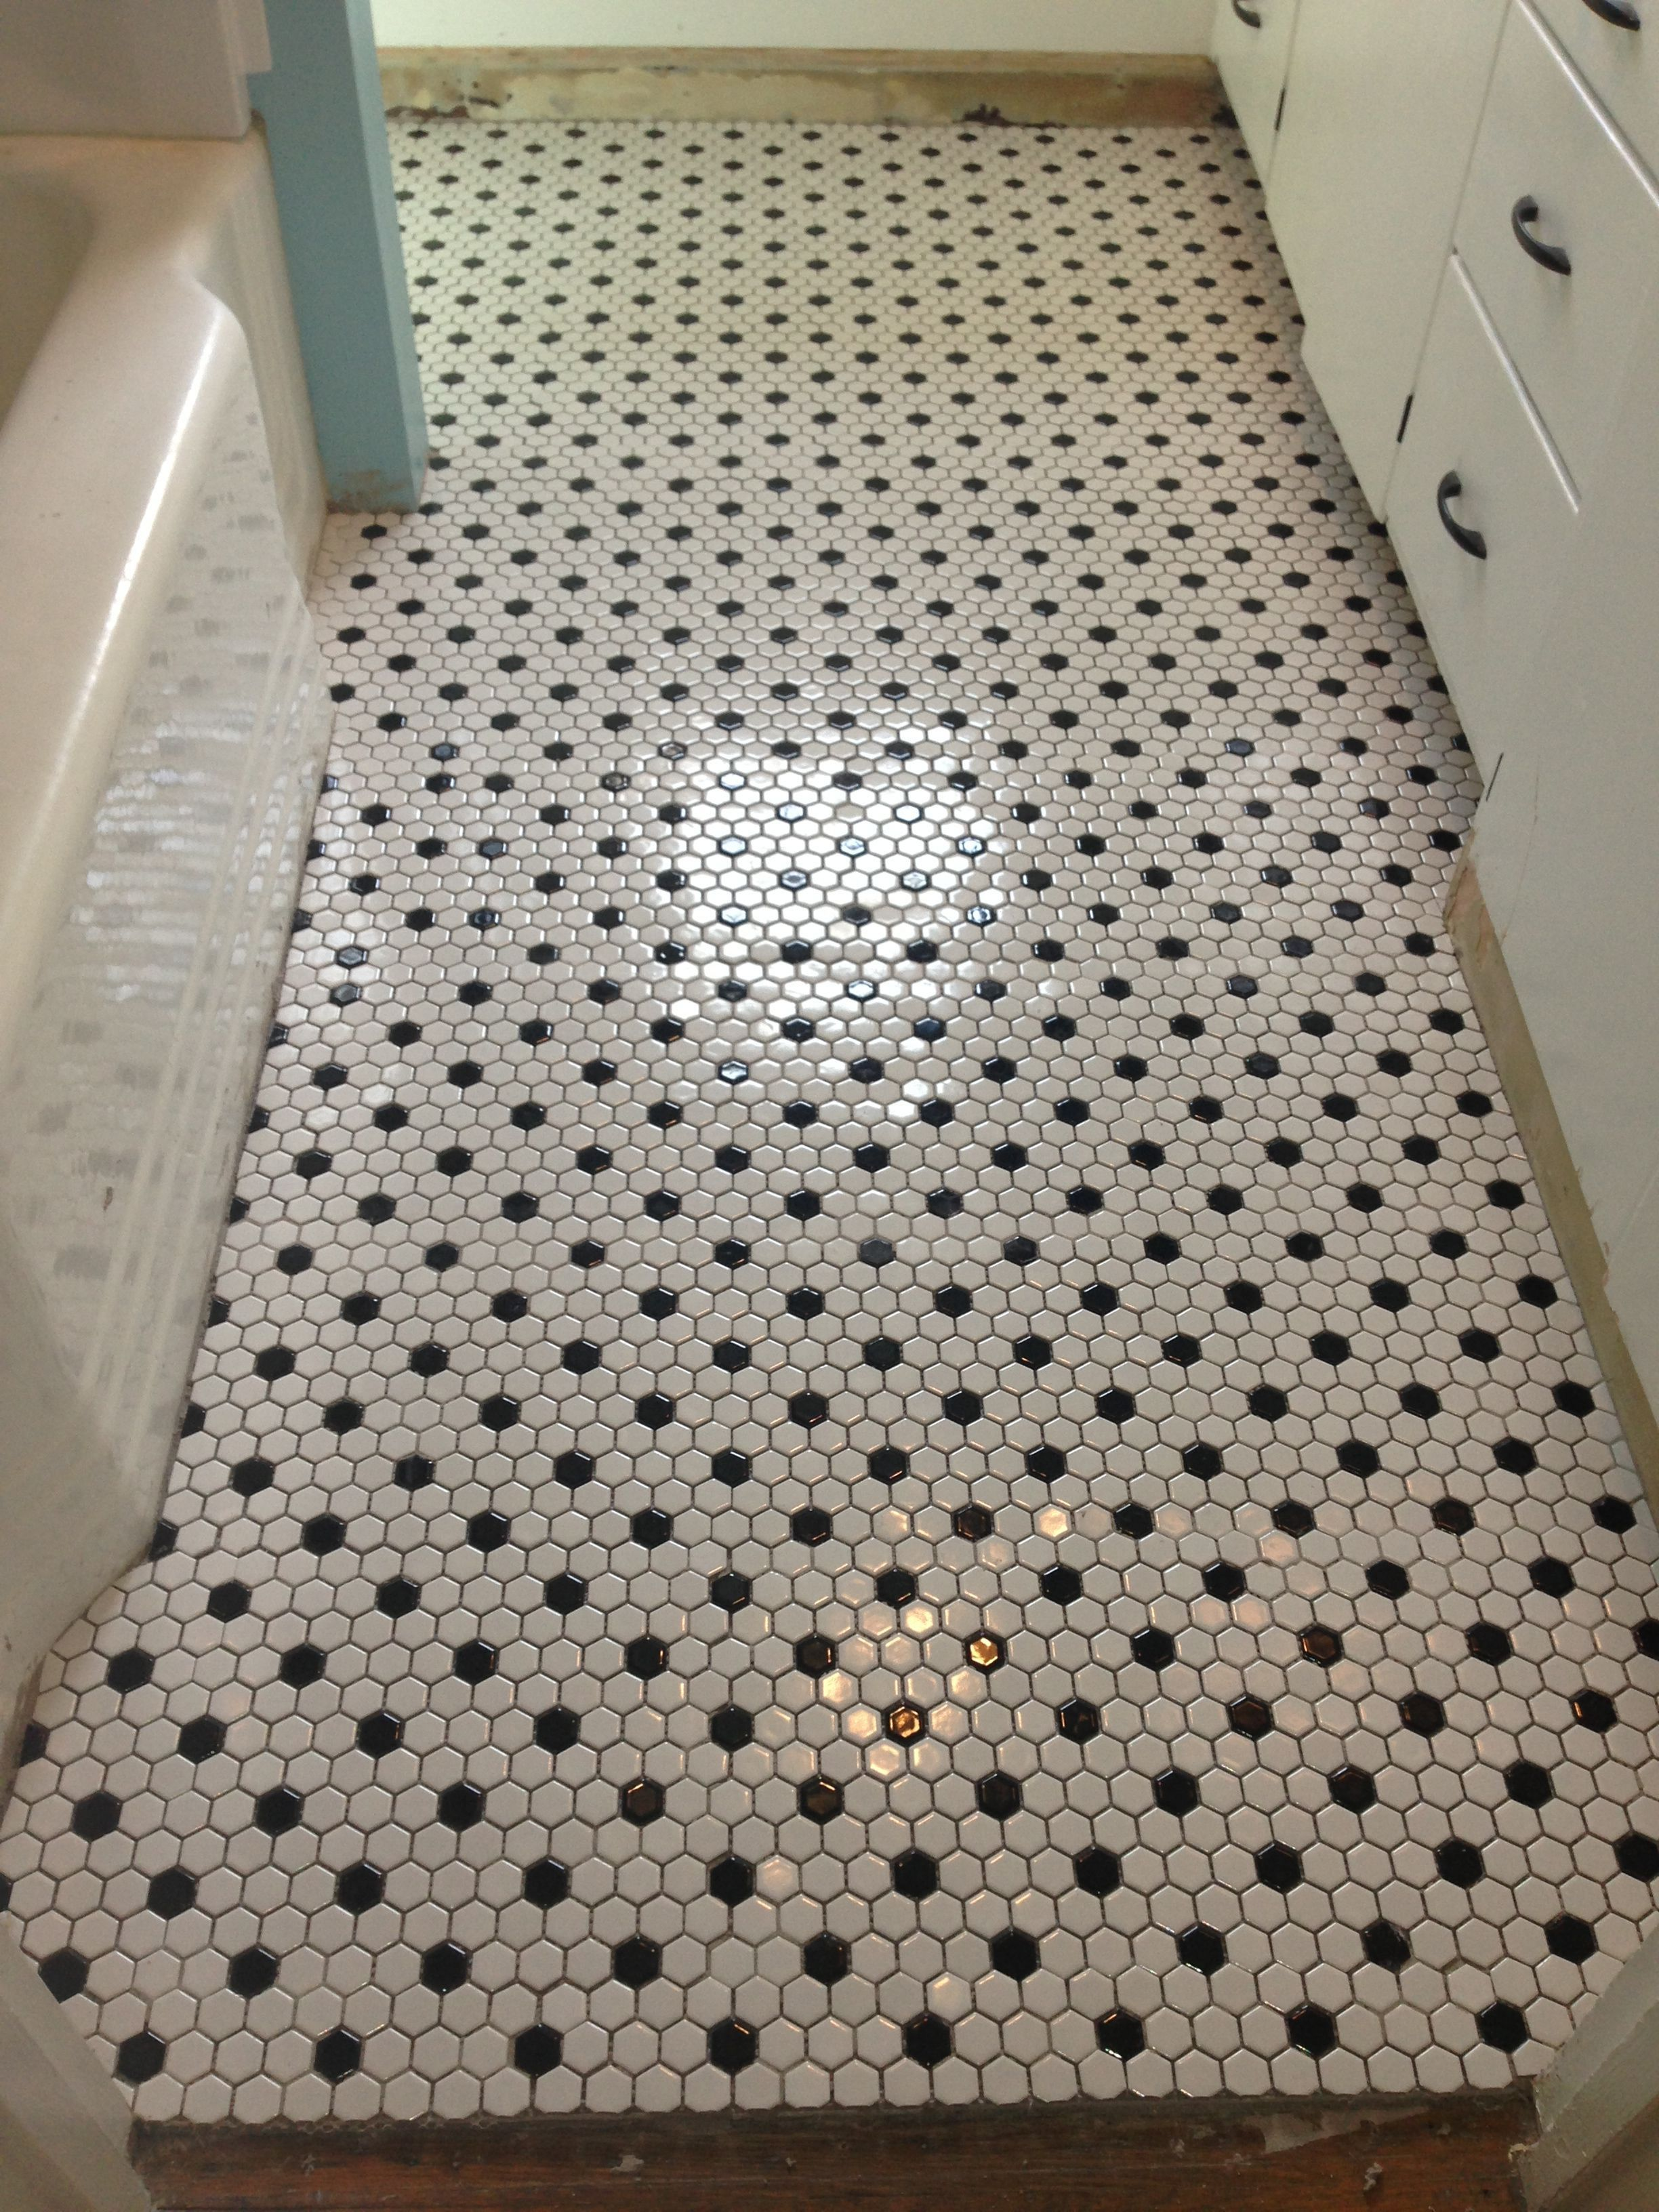 15 Popular Mosaic Floor Ideas For Home Interior To Be More Stylish White Mosaic Bathroom White Bathroom Tiles Hexagon Tile Bathroom